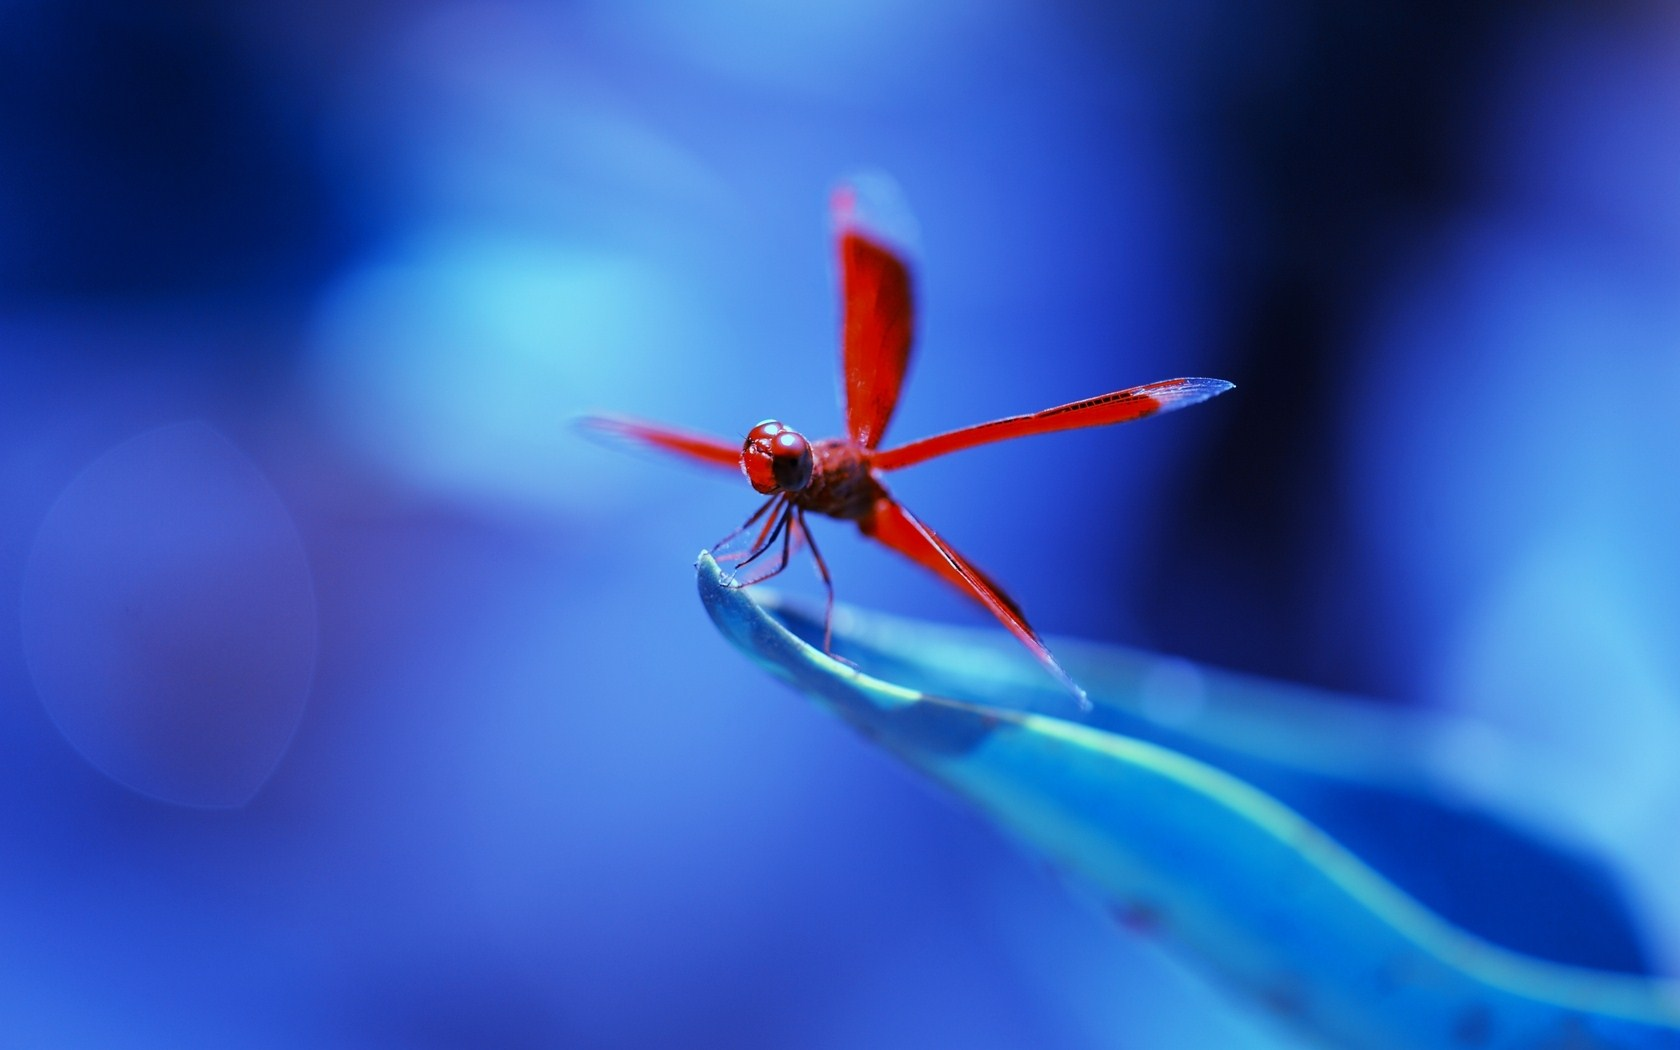 dragonfly Wallpaper and Background 1680x1050 ID463349 1680x1050